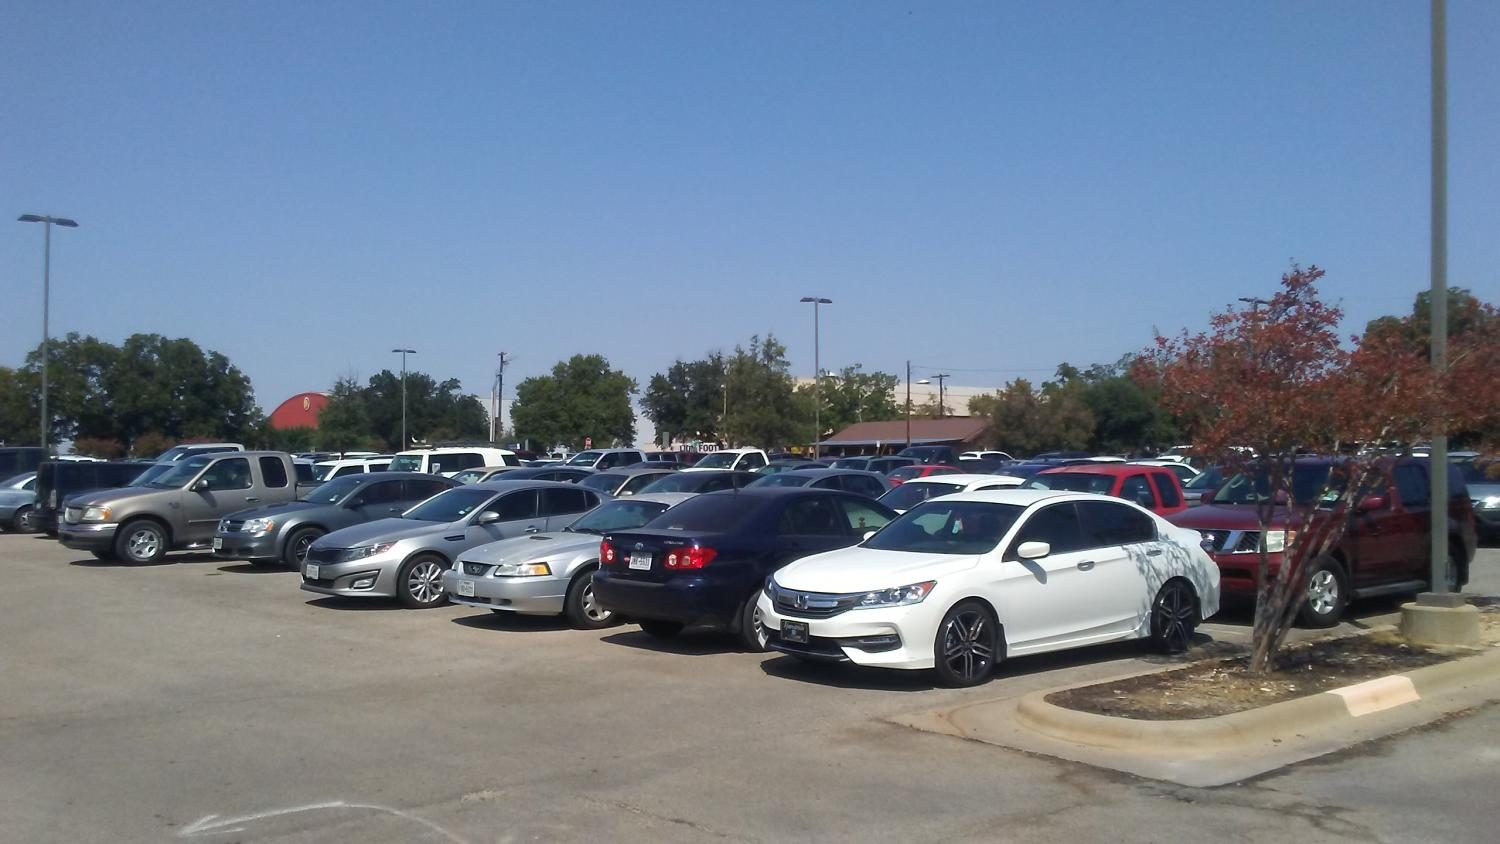 Parking Lot 5, located outside of Ferguson and Gee Library.